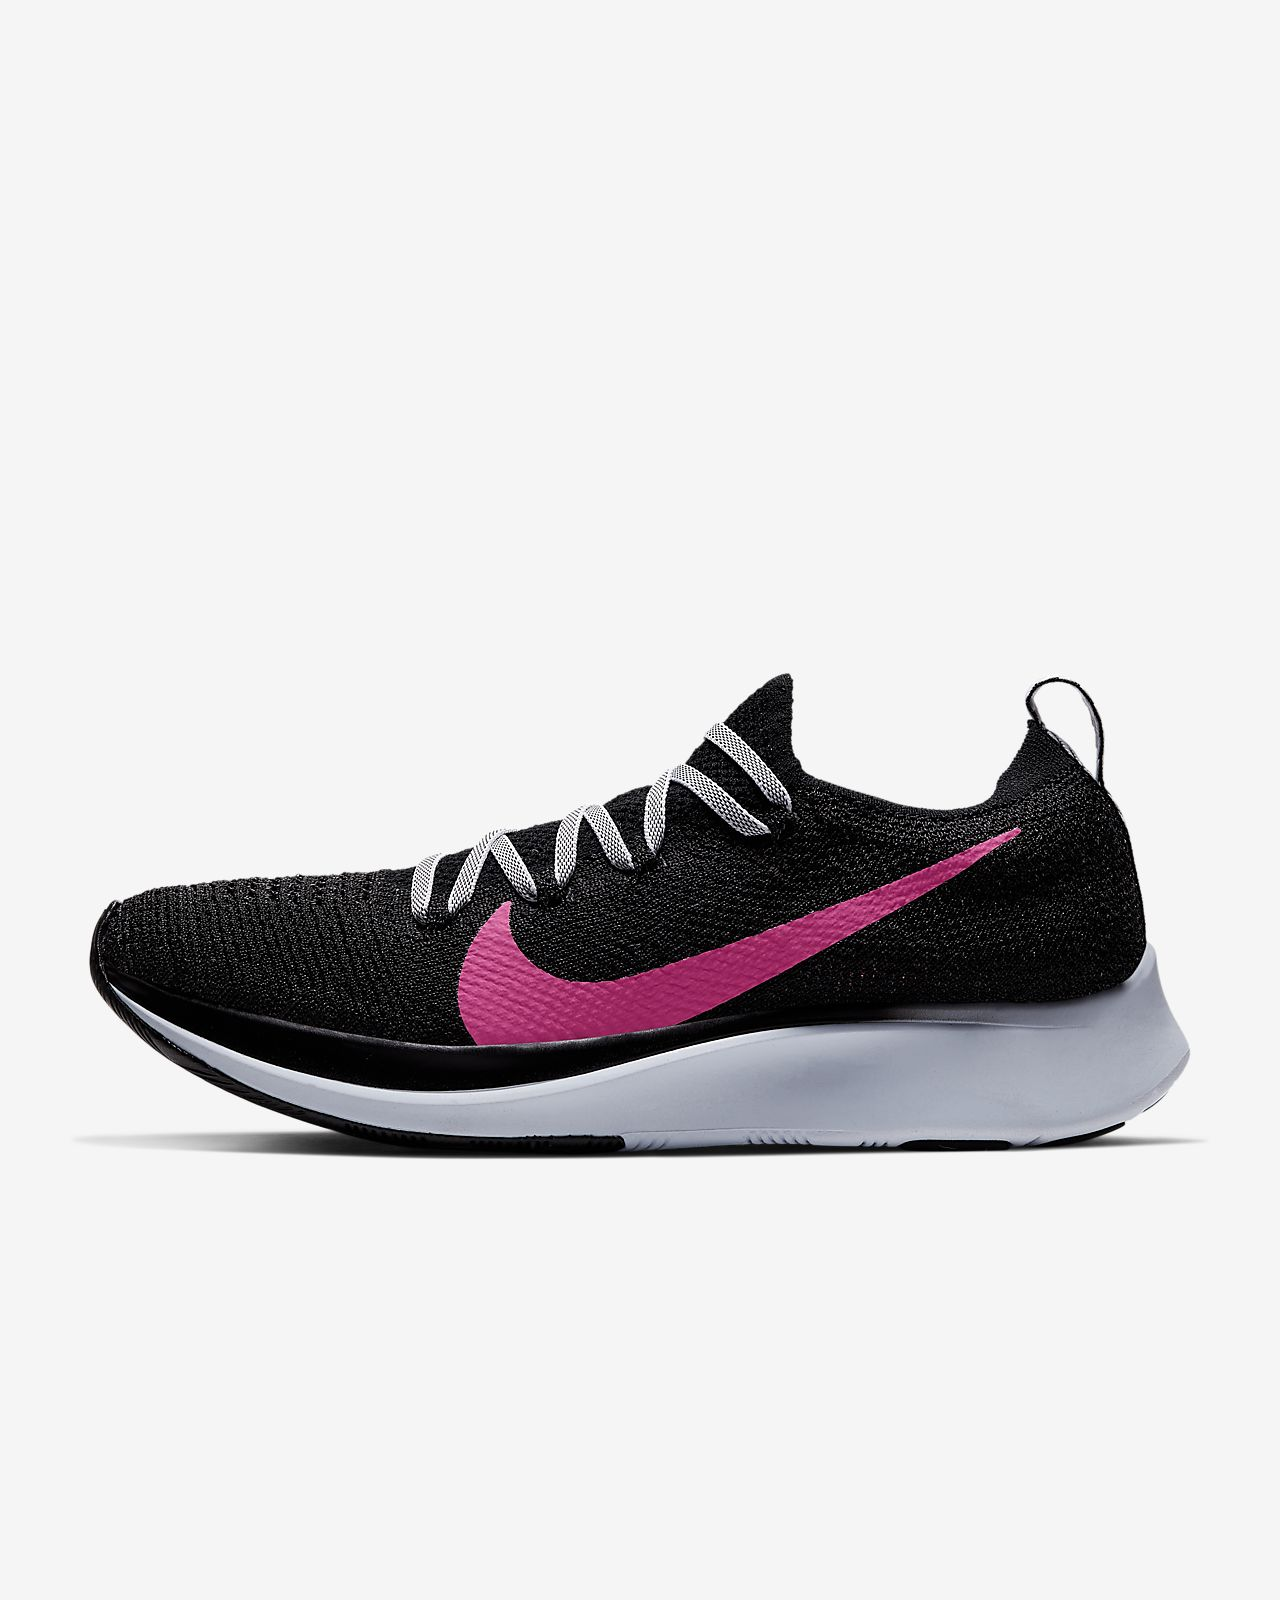 Chaussures Sport Chaussures Femme Nike Nike Femme Nike Sport Chaussures Femme 13TKlcFJ